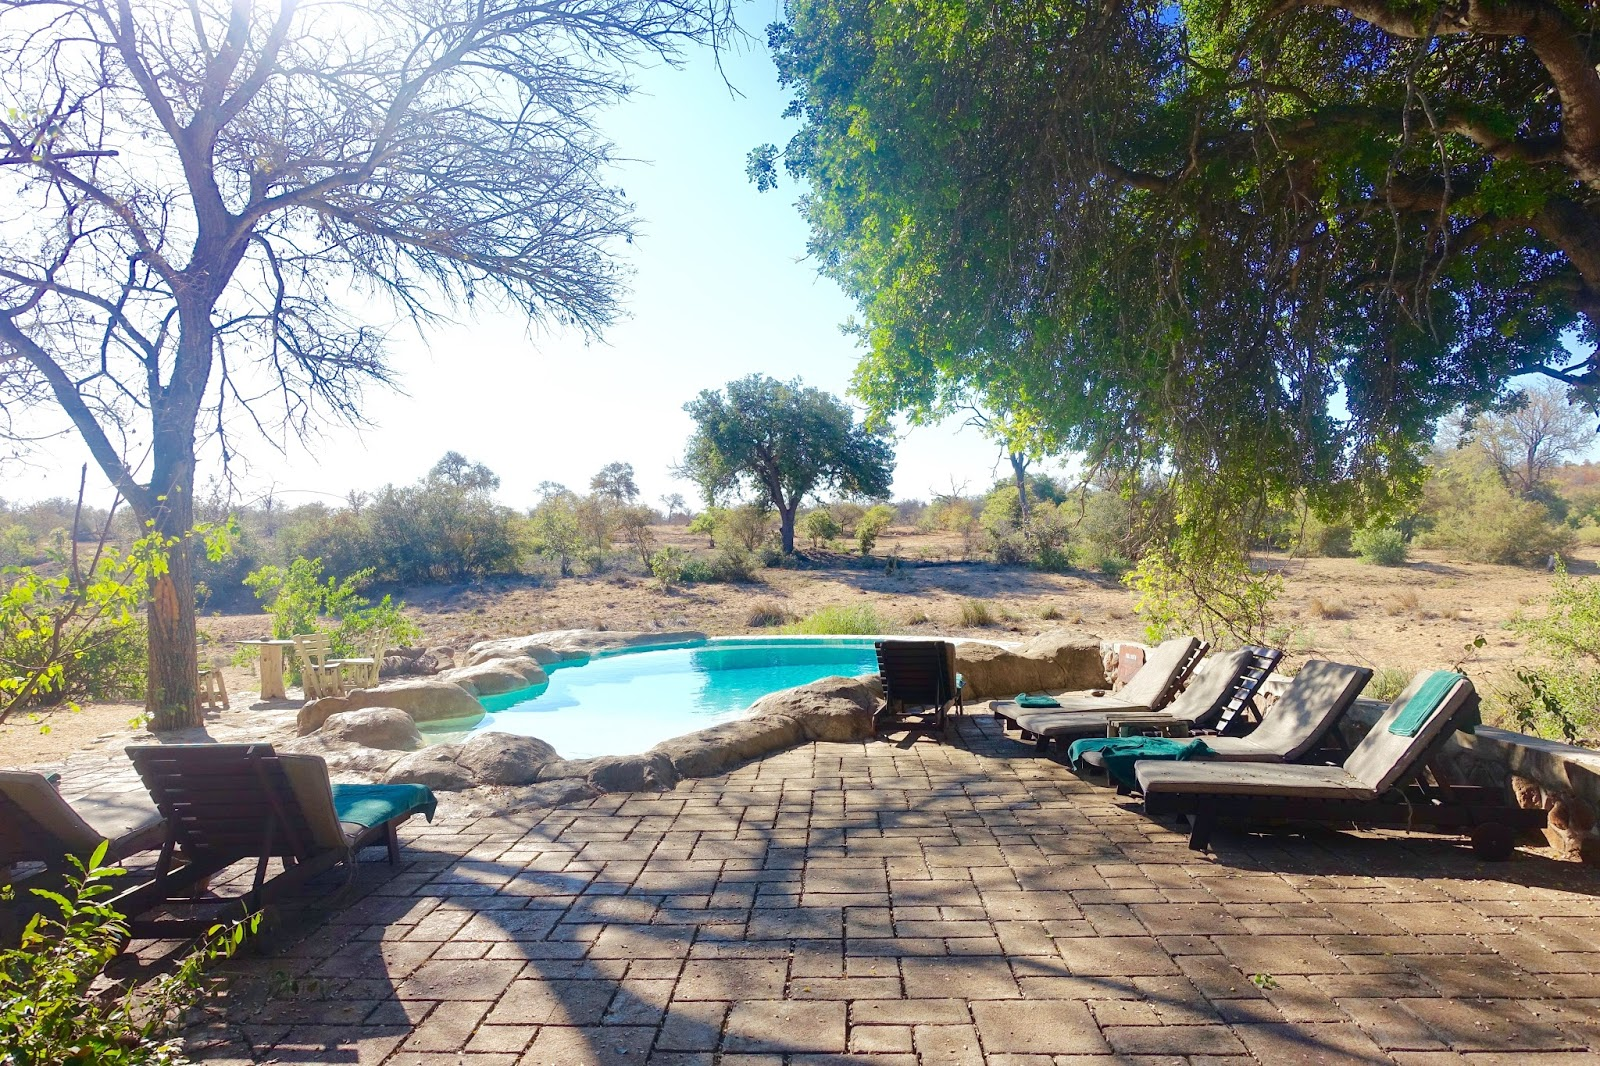 swimming pool at motswari lodge